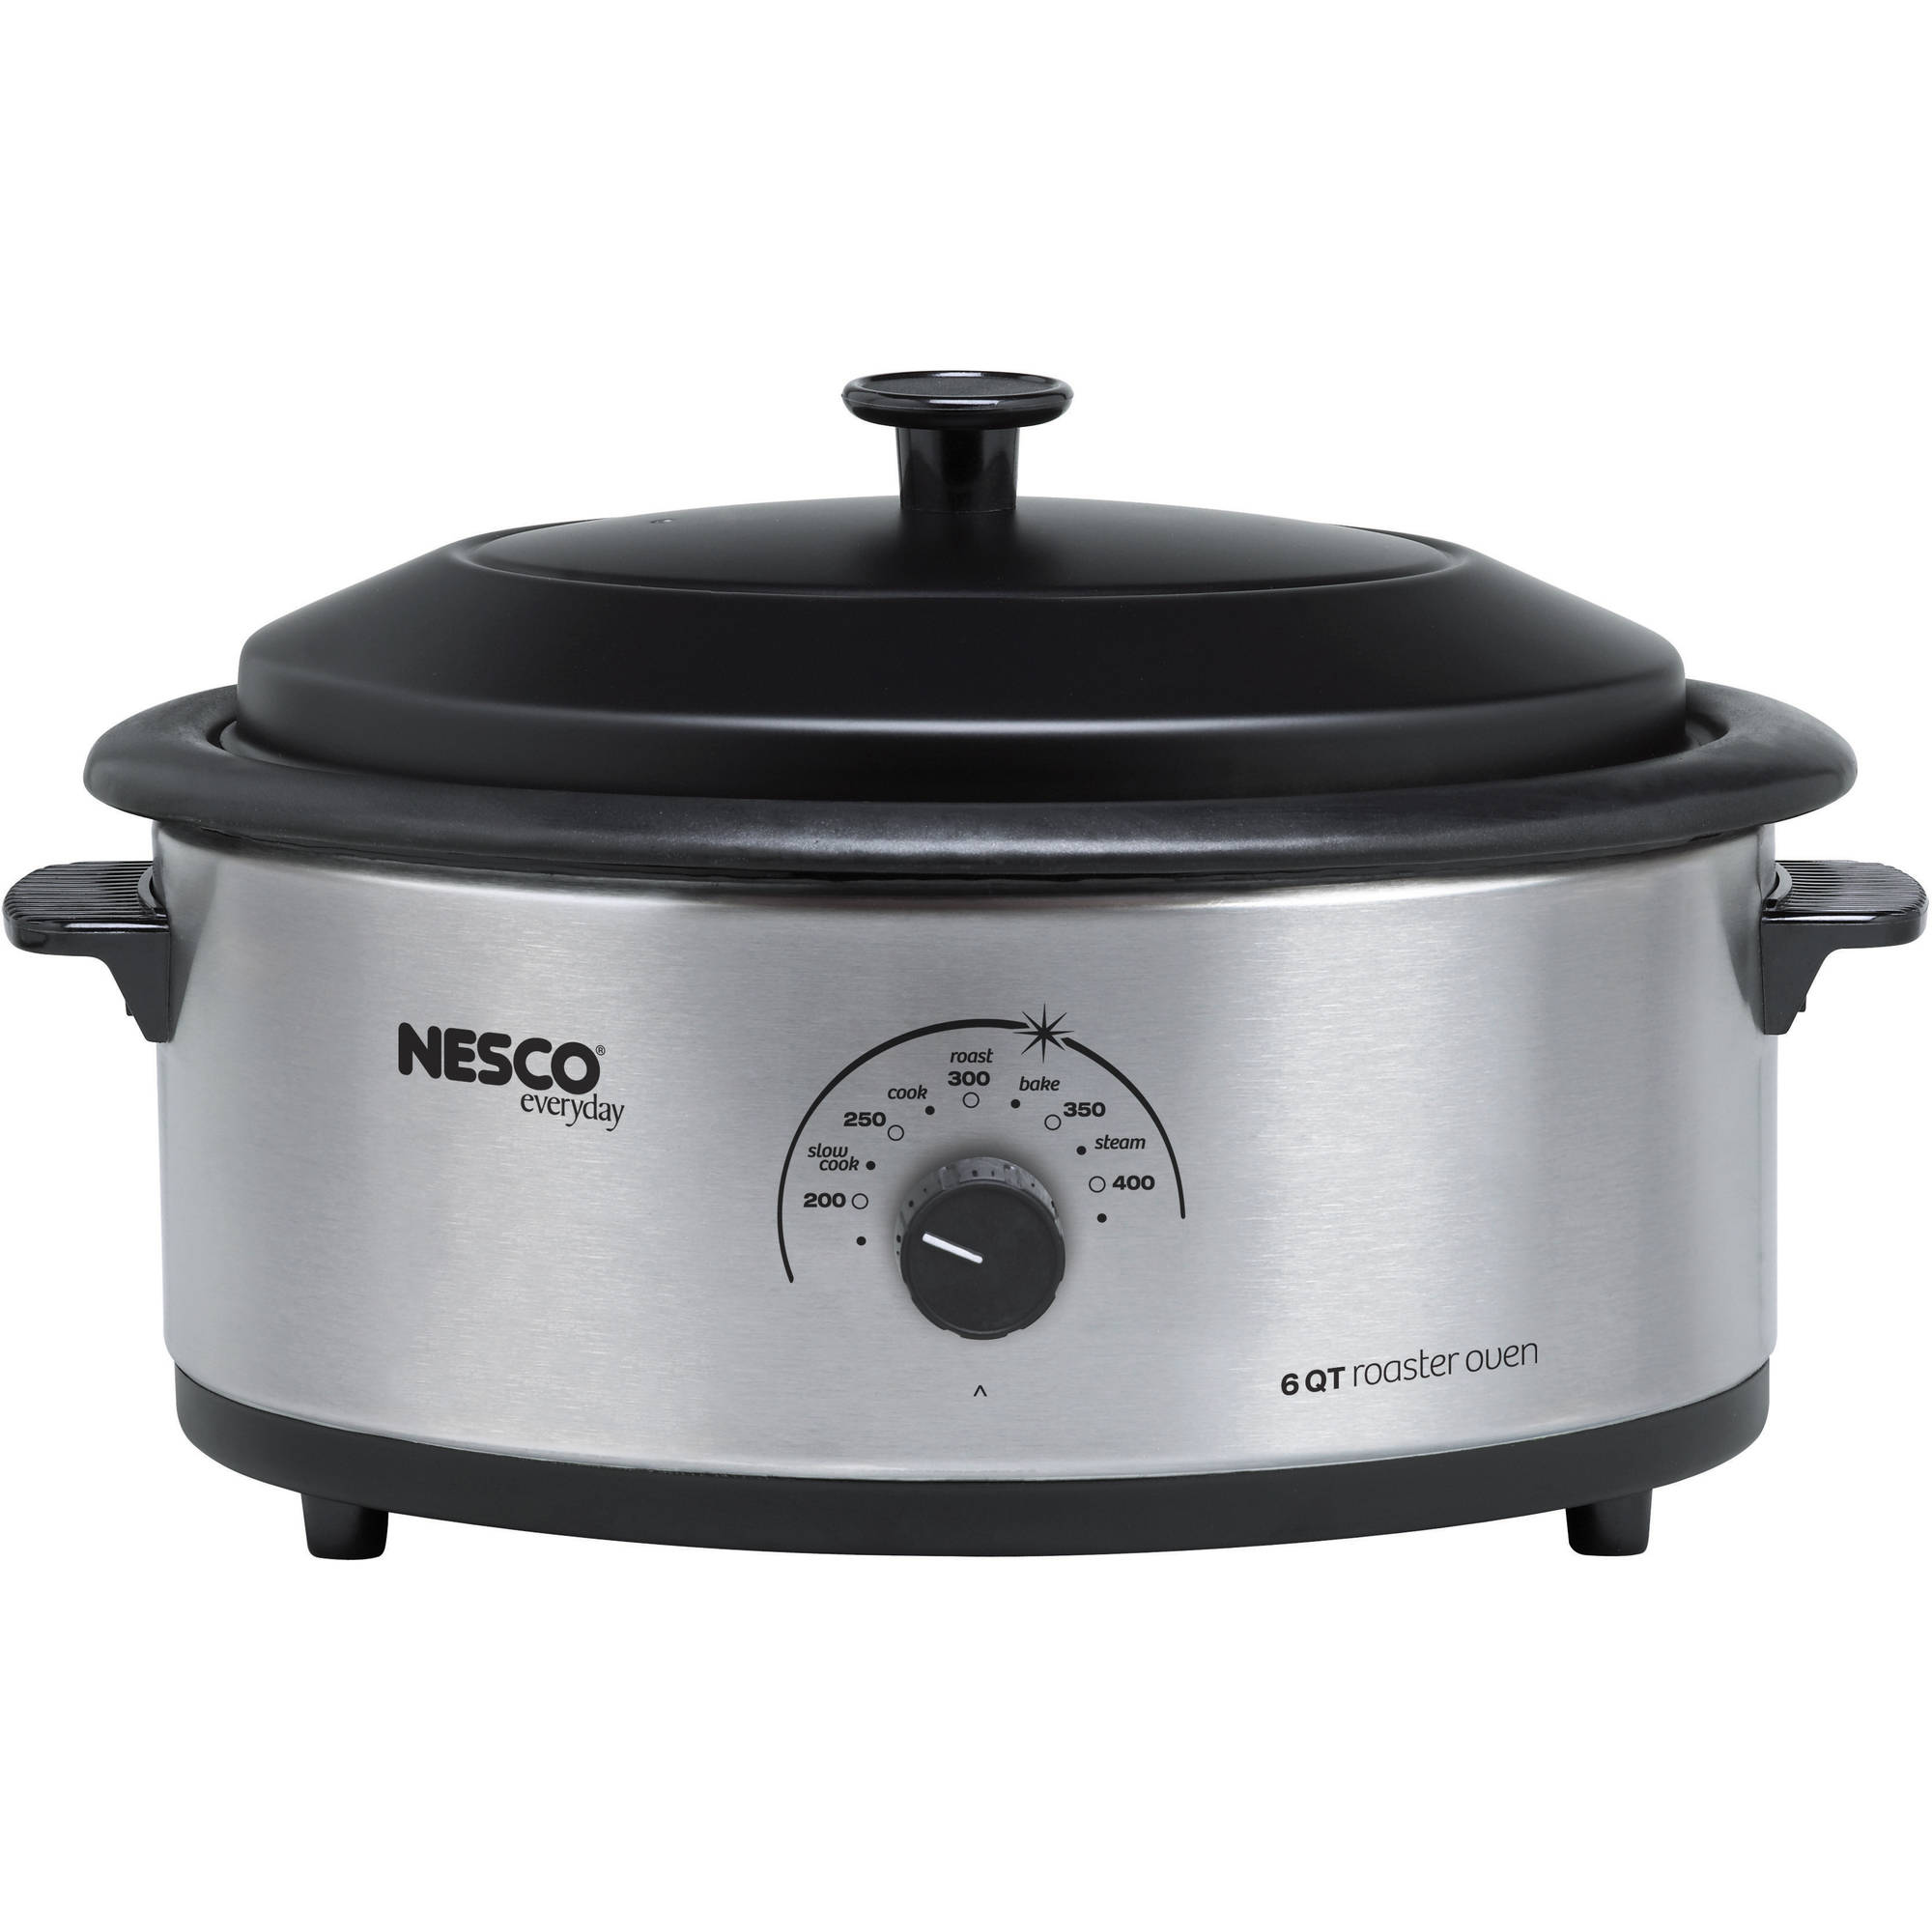 Non Stick Kitchen Appliances Nesco 6 Quart Capacity Stainless Steel Roaster Oven Non Stick